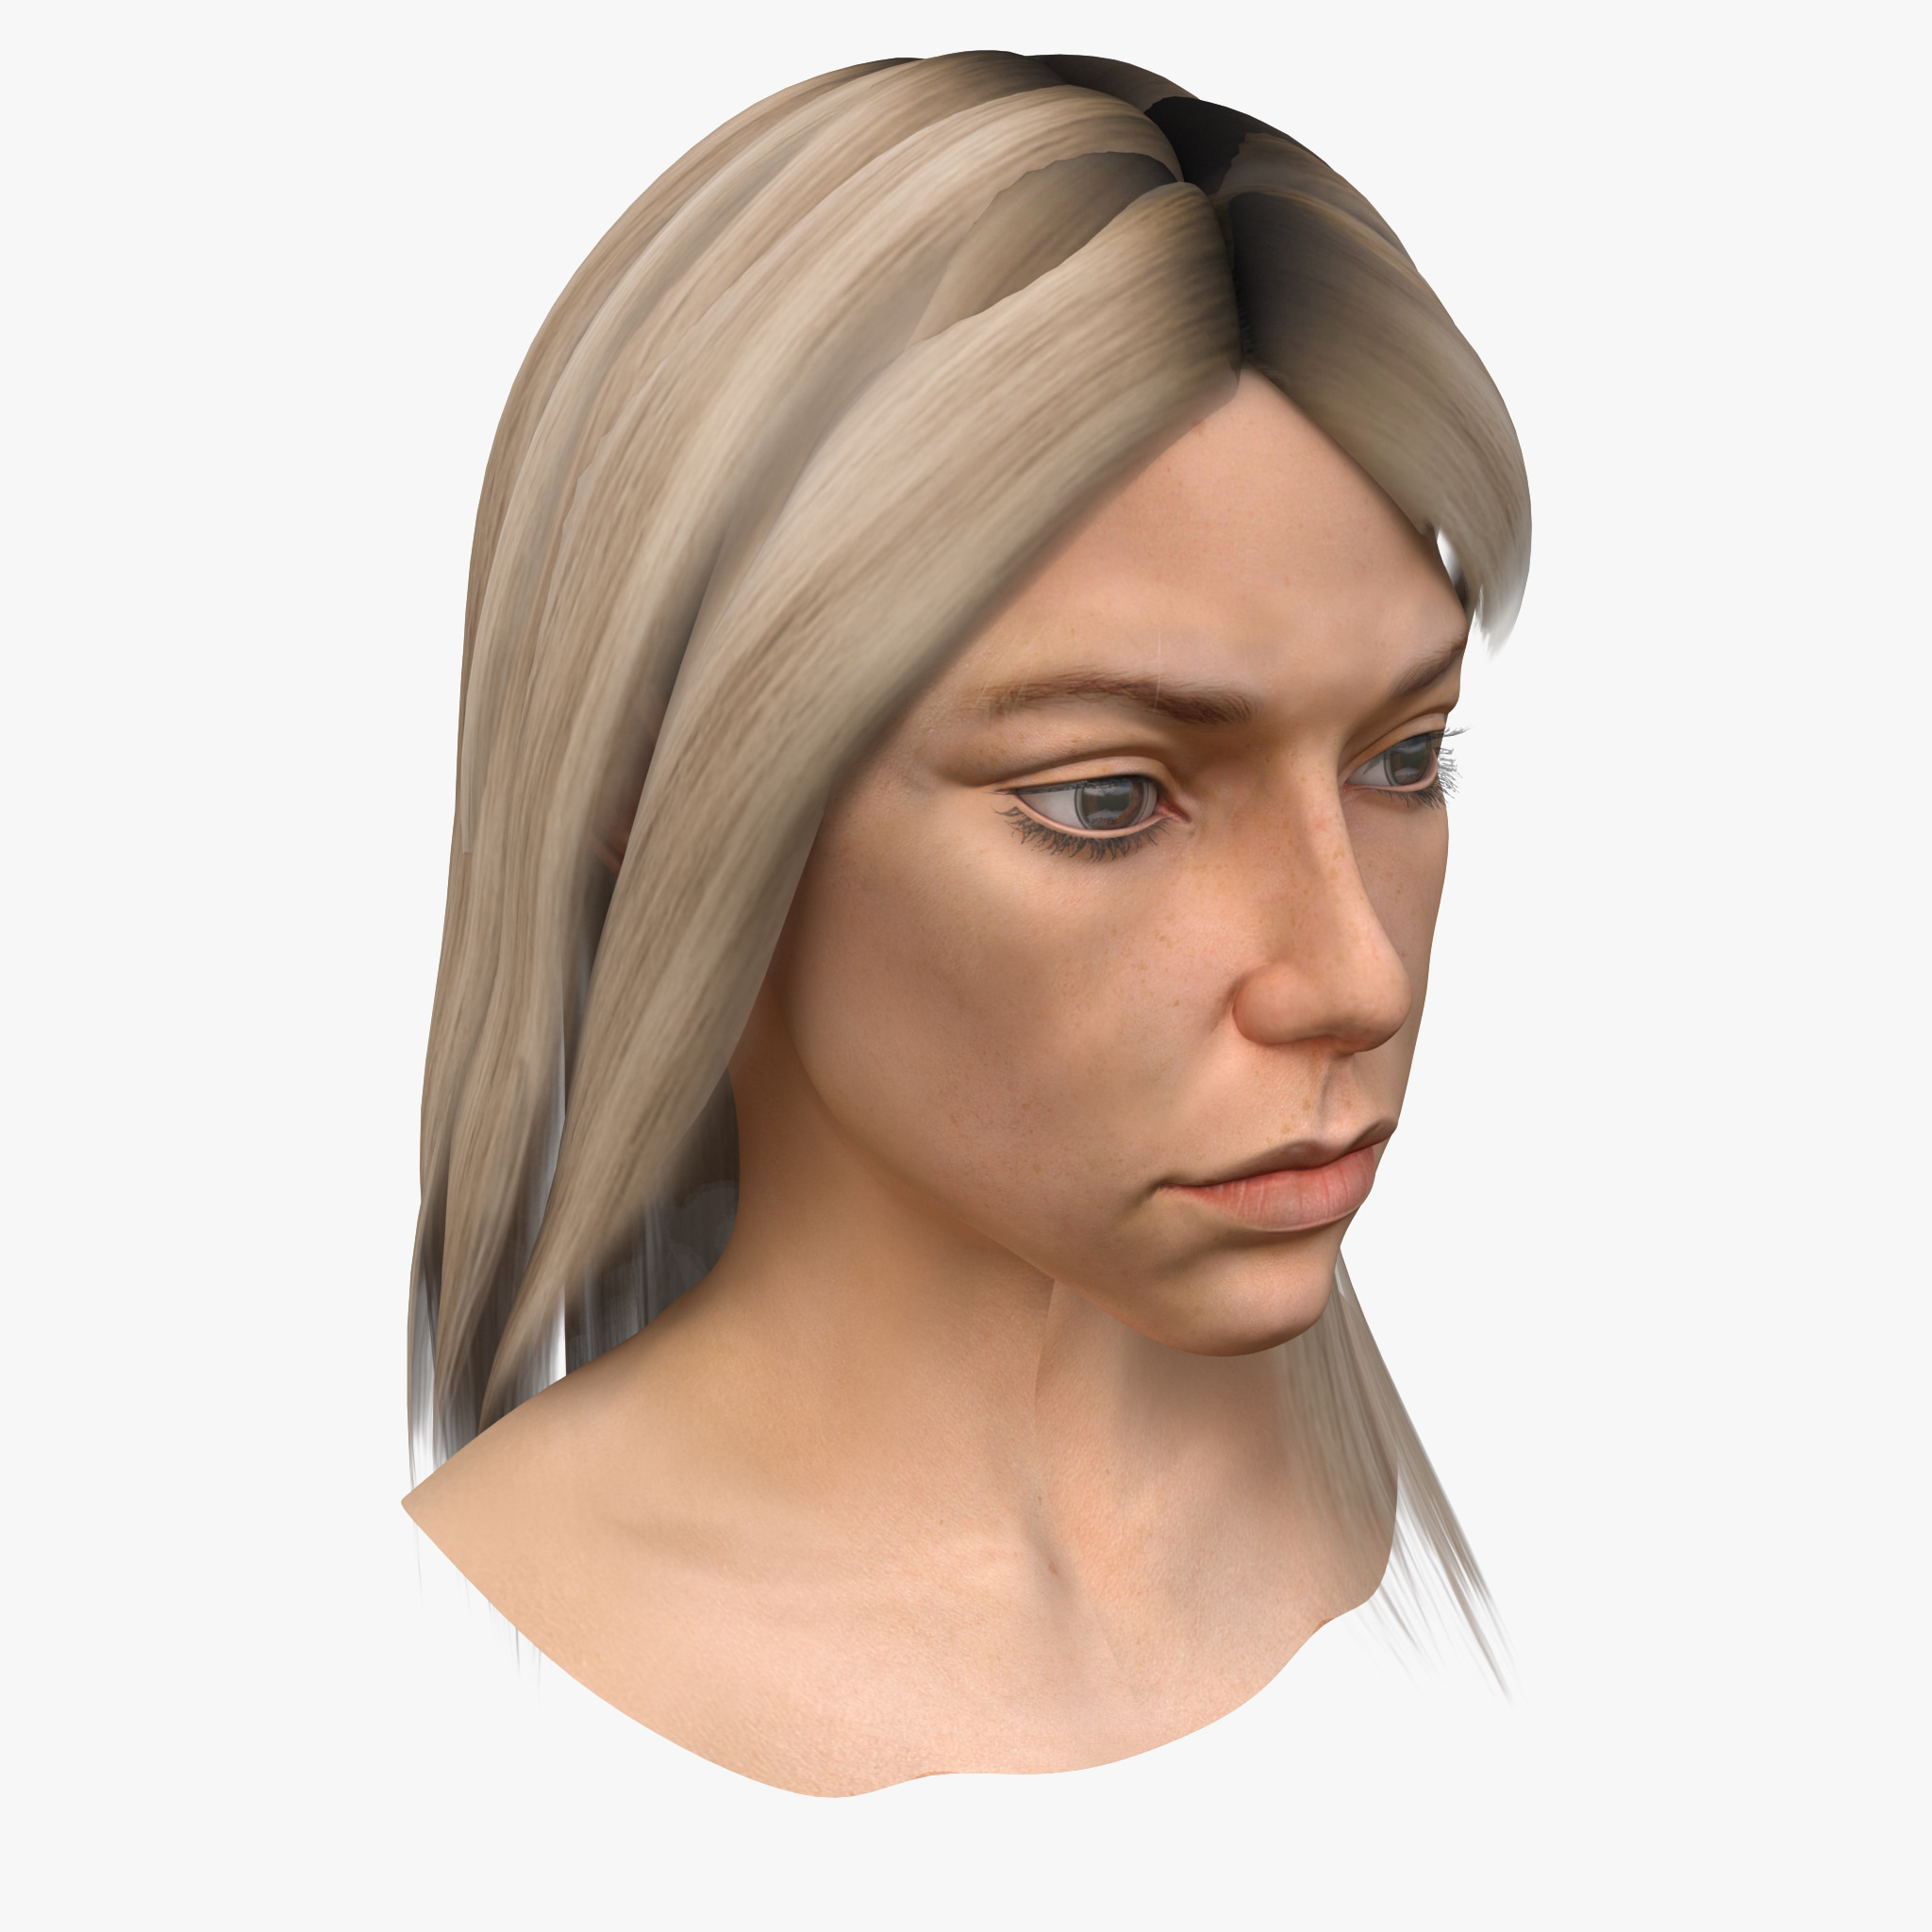 Female Head 2